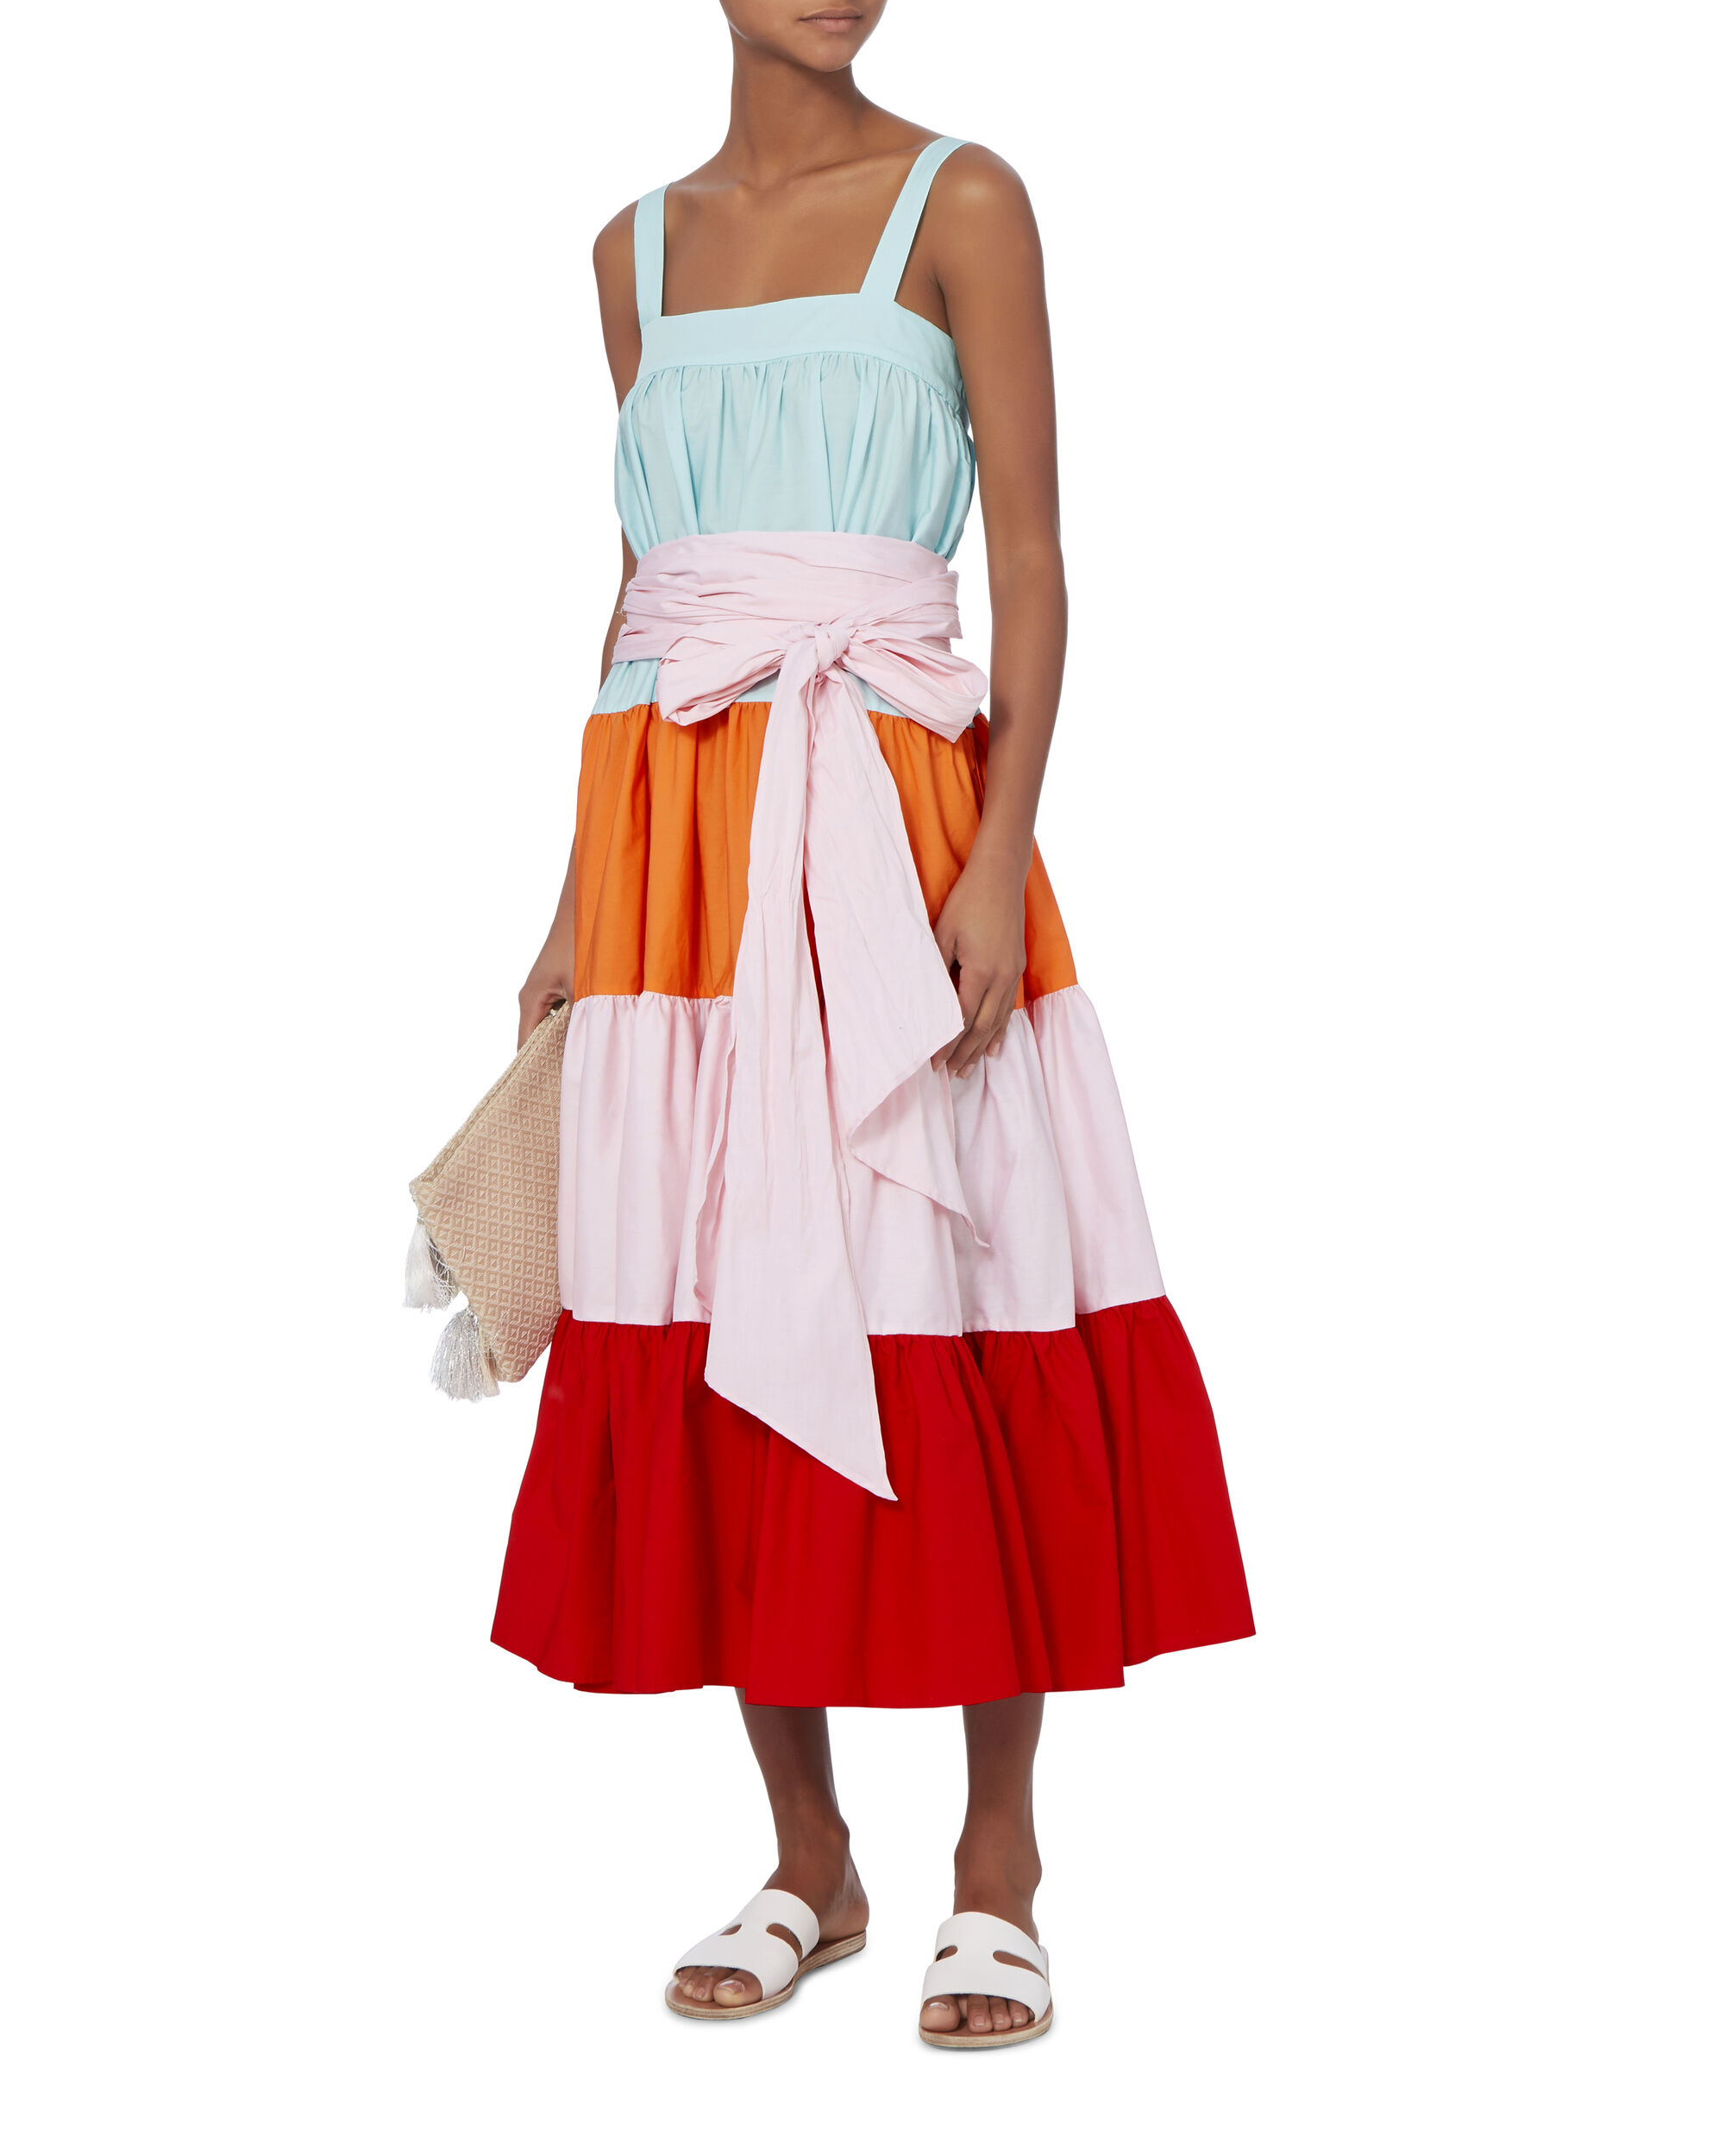 Colorblocked Tiered Dress, COLORBLOCK, hi-res